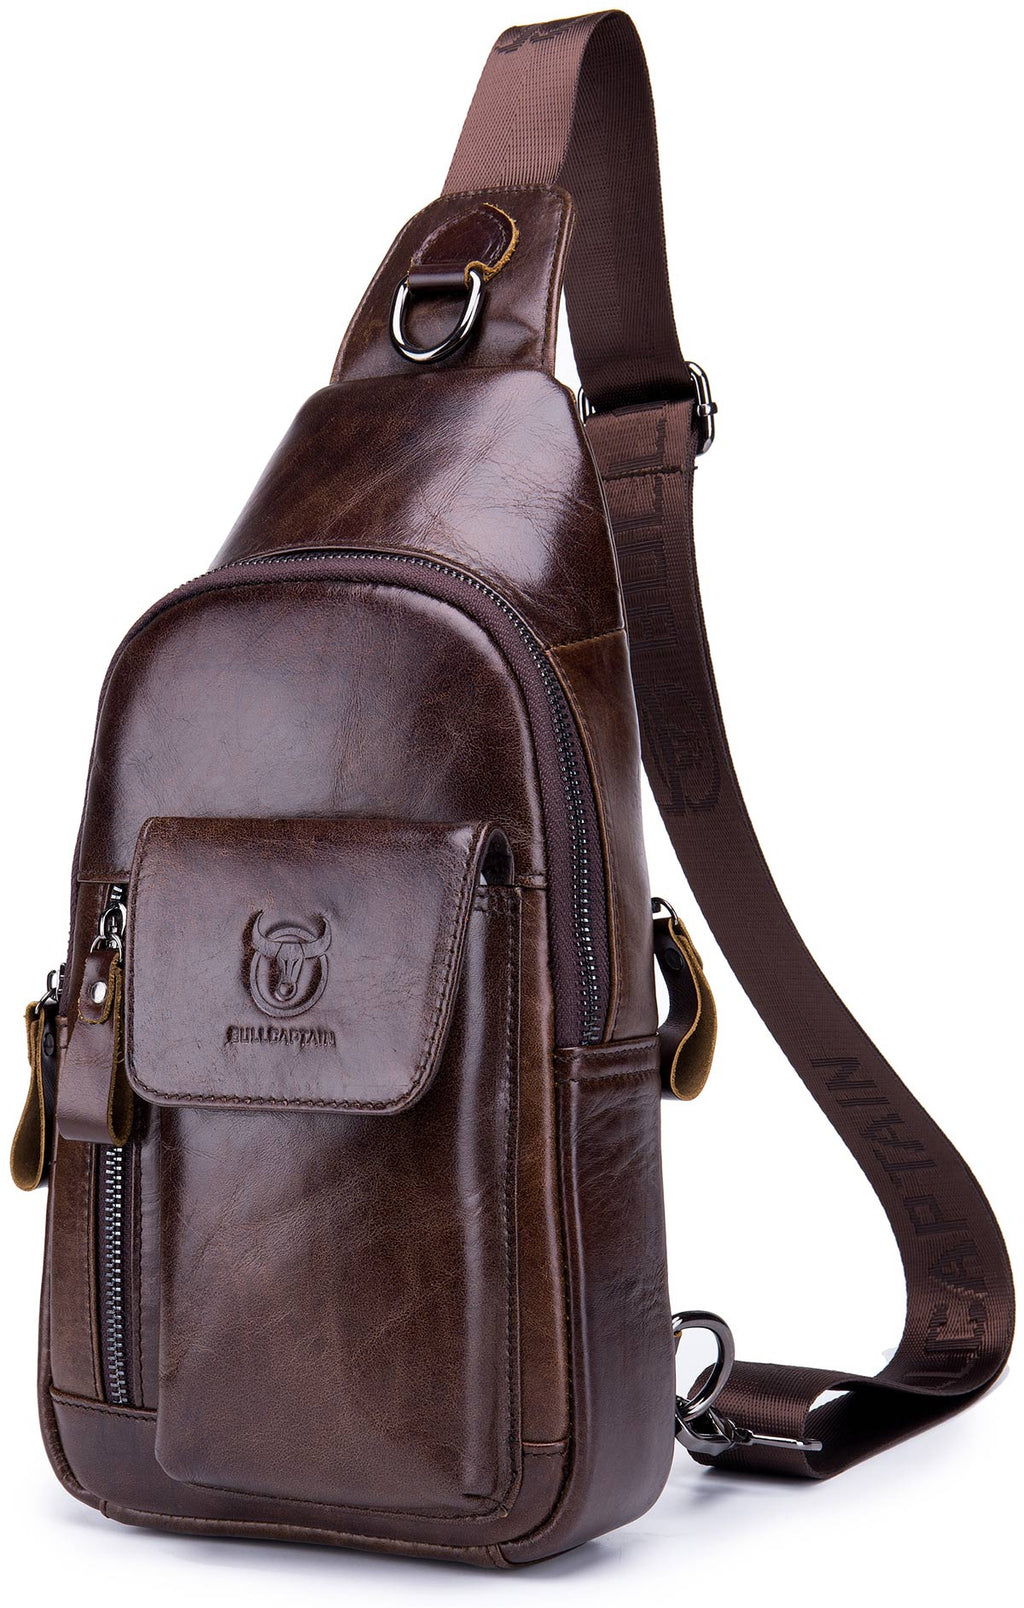 BULLCAPTAIN LEATHER SLING BAG - 121